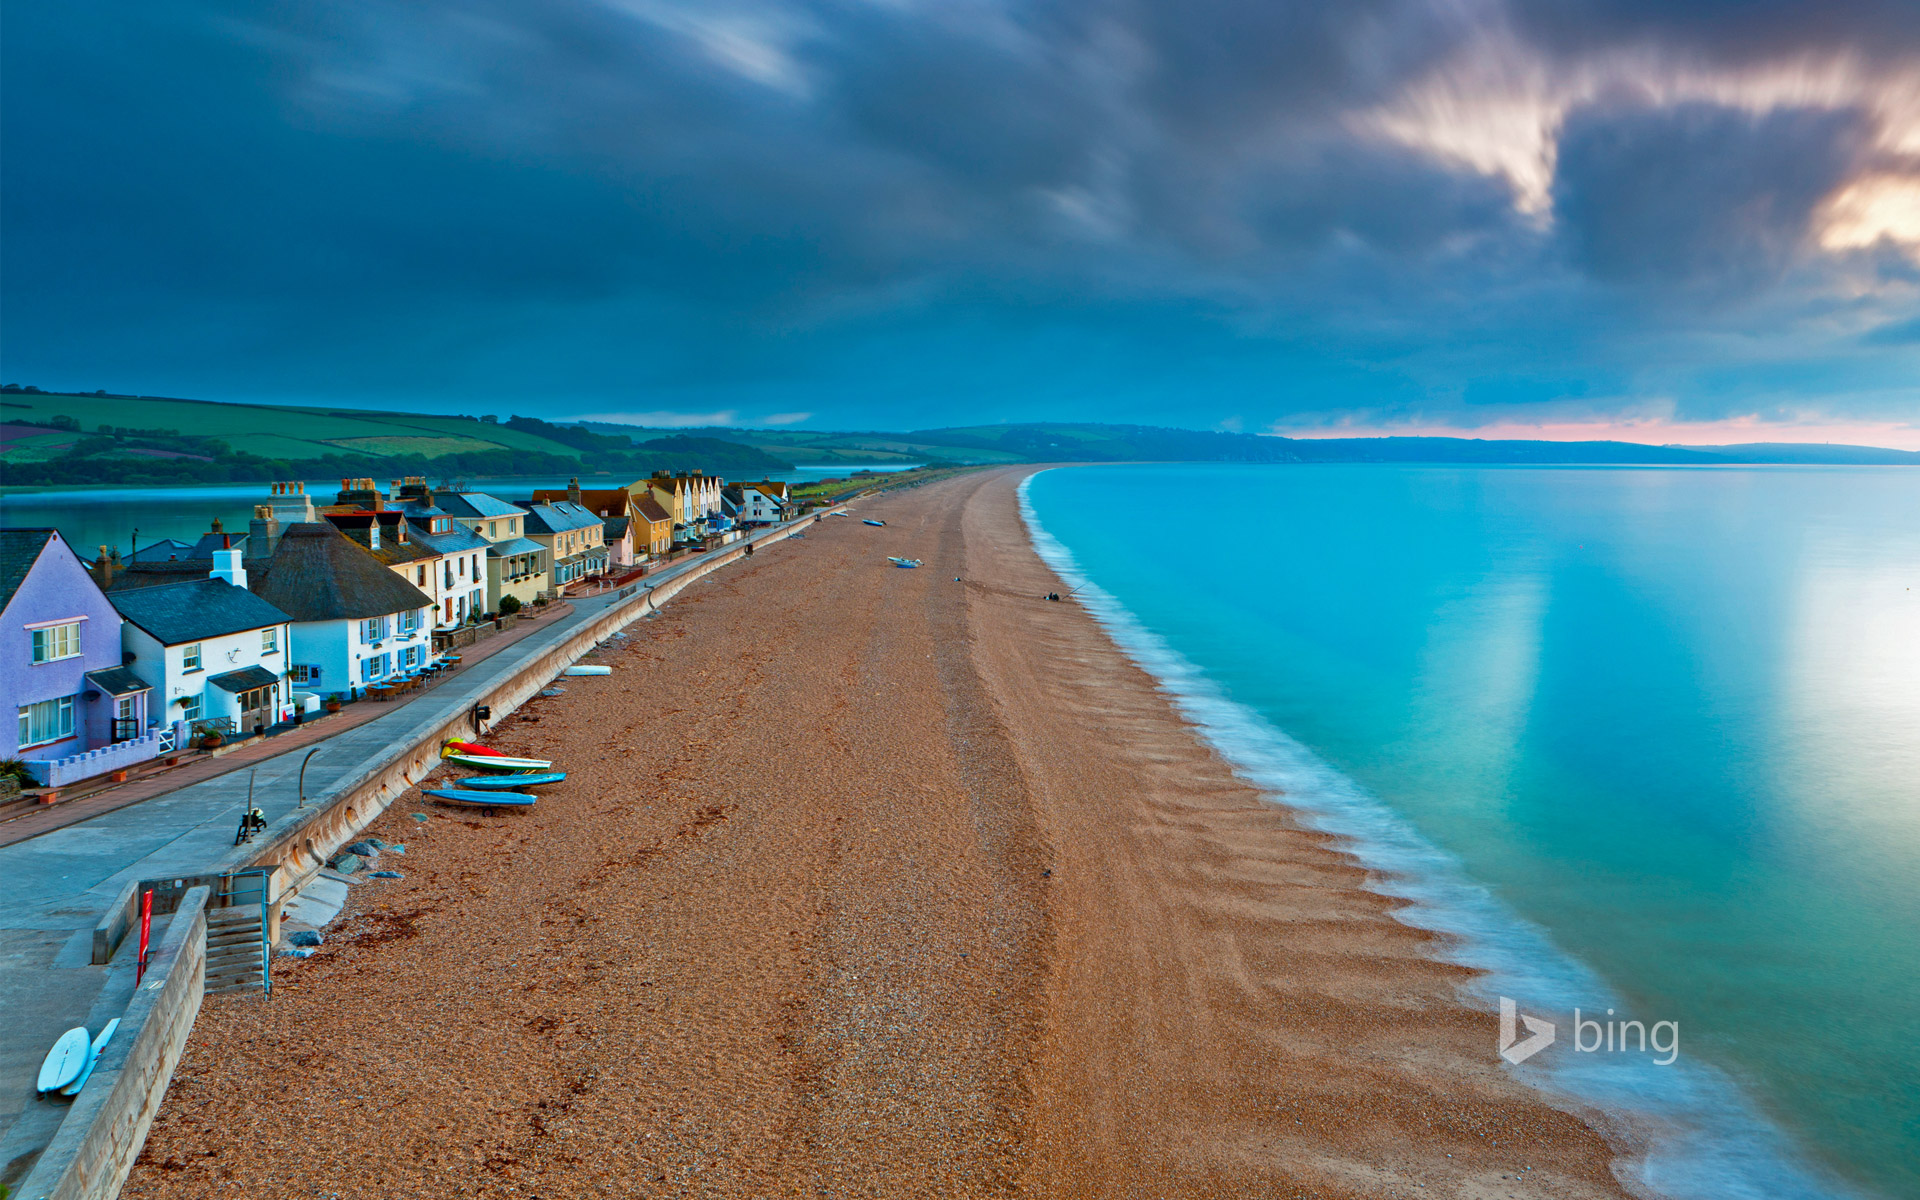 Torcross, South Devon, England